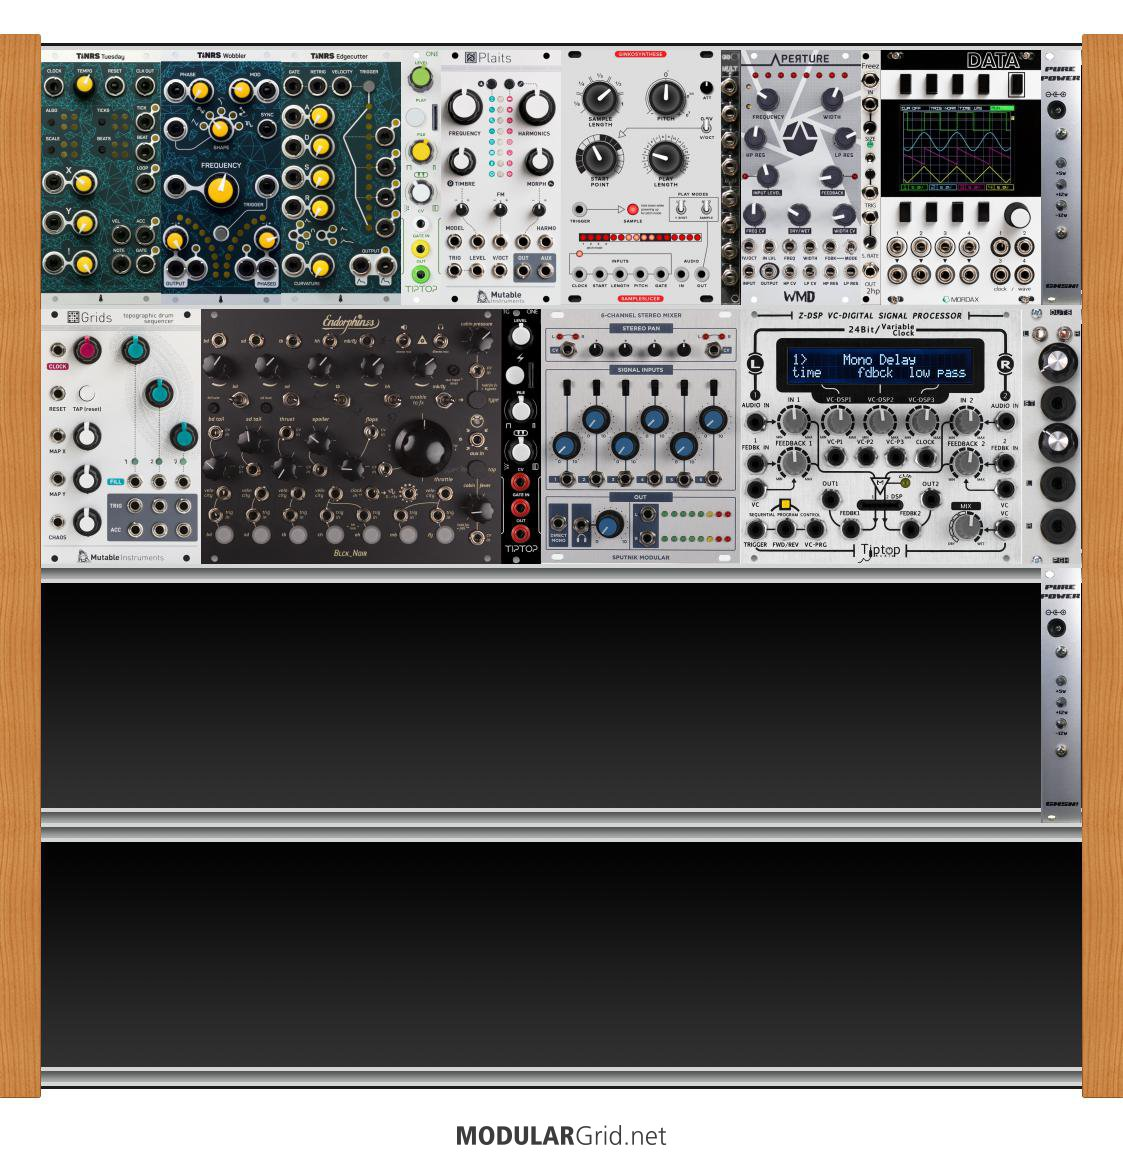 synths for beginners – DivKid Modular